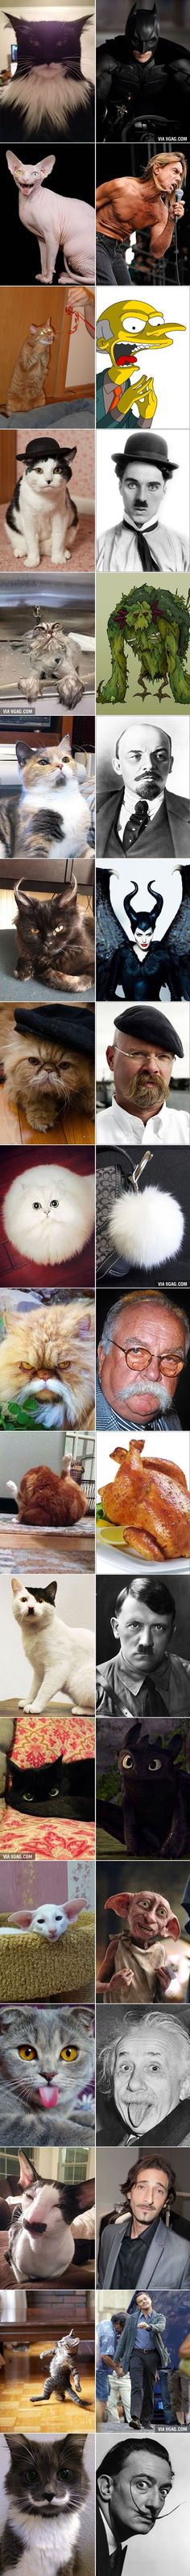 lol cats are adorable